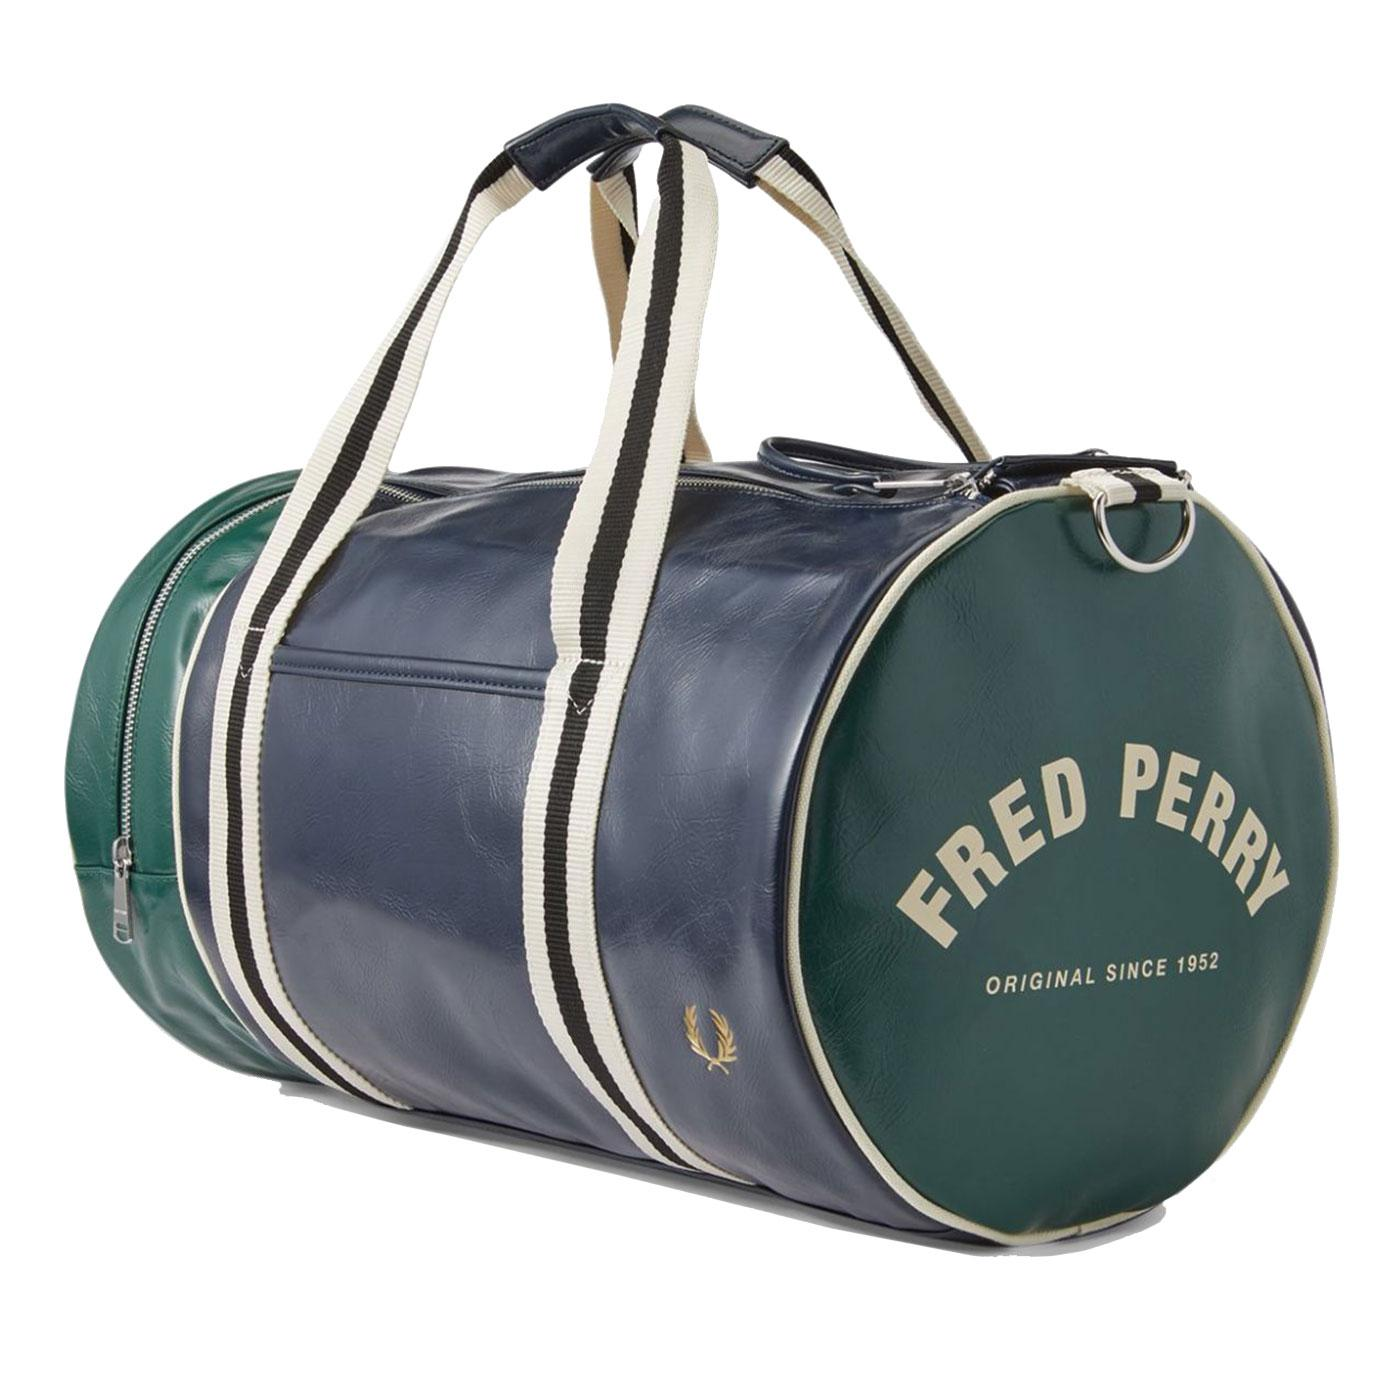 FRED PERRY Retro Colour Block Barrel Bag Navy/Ivy